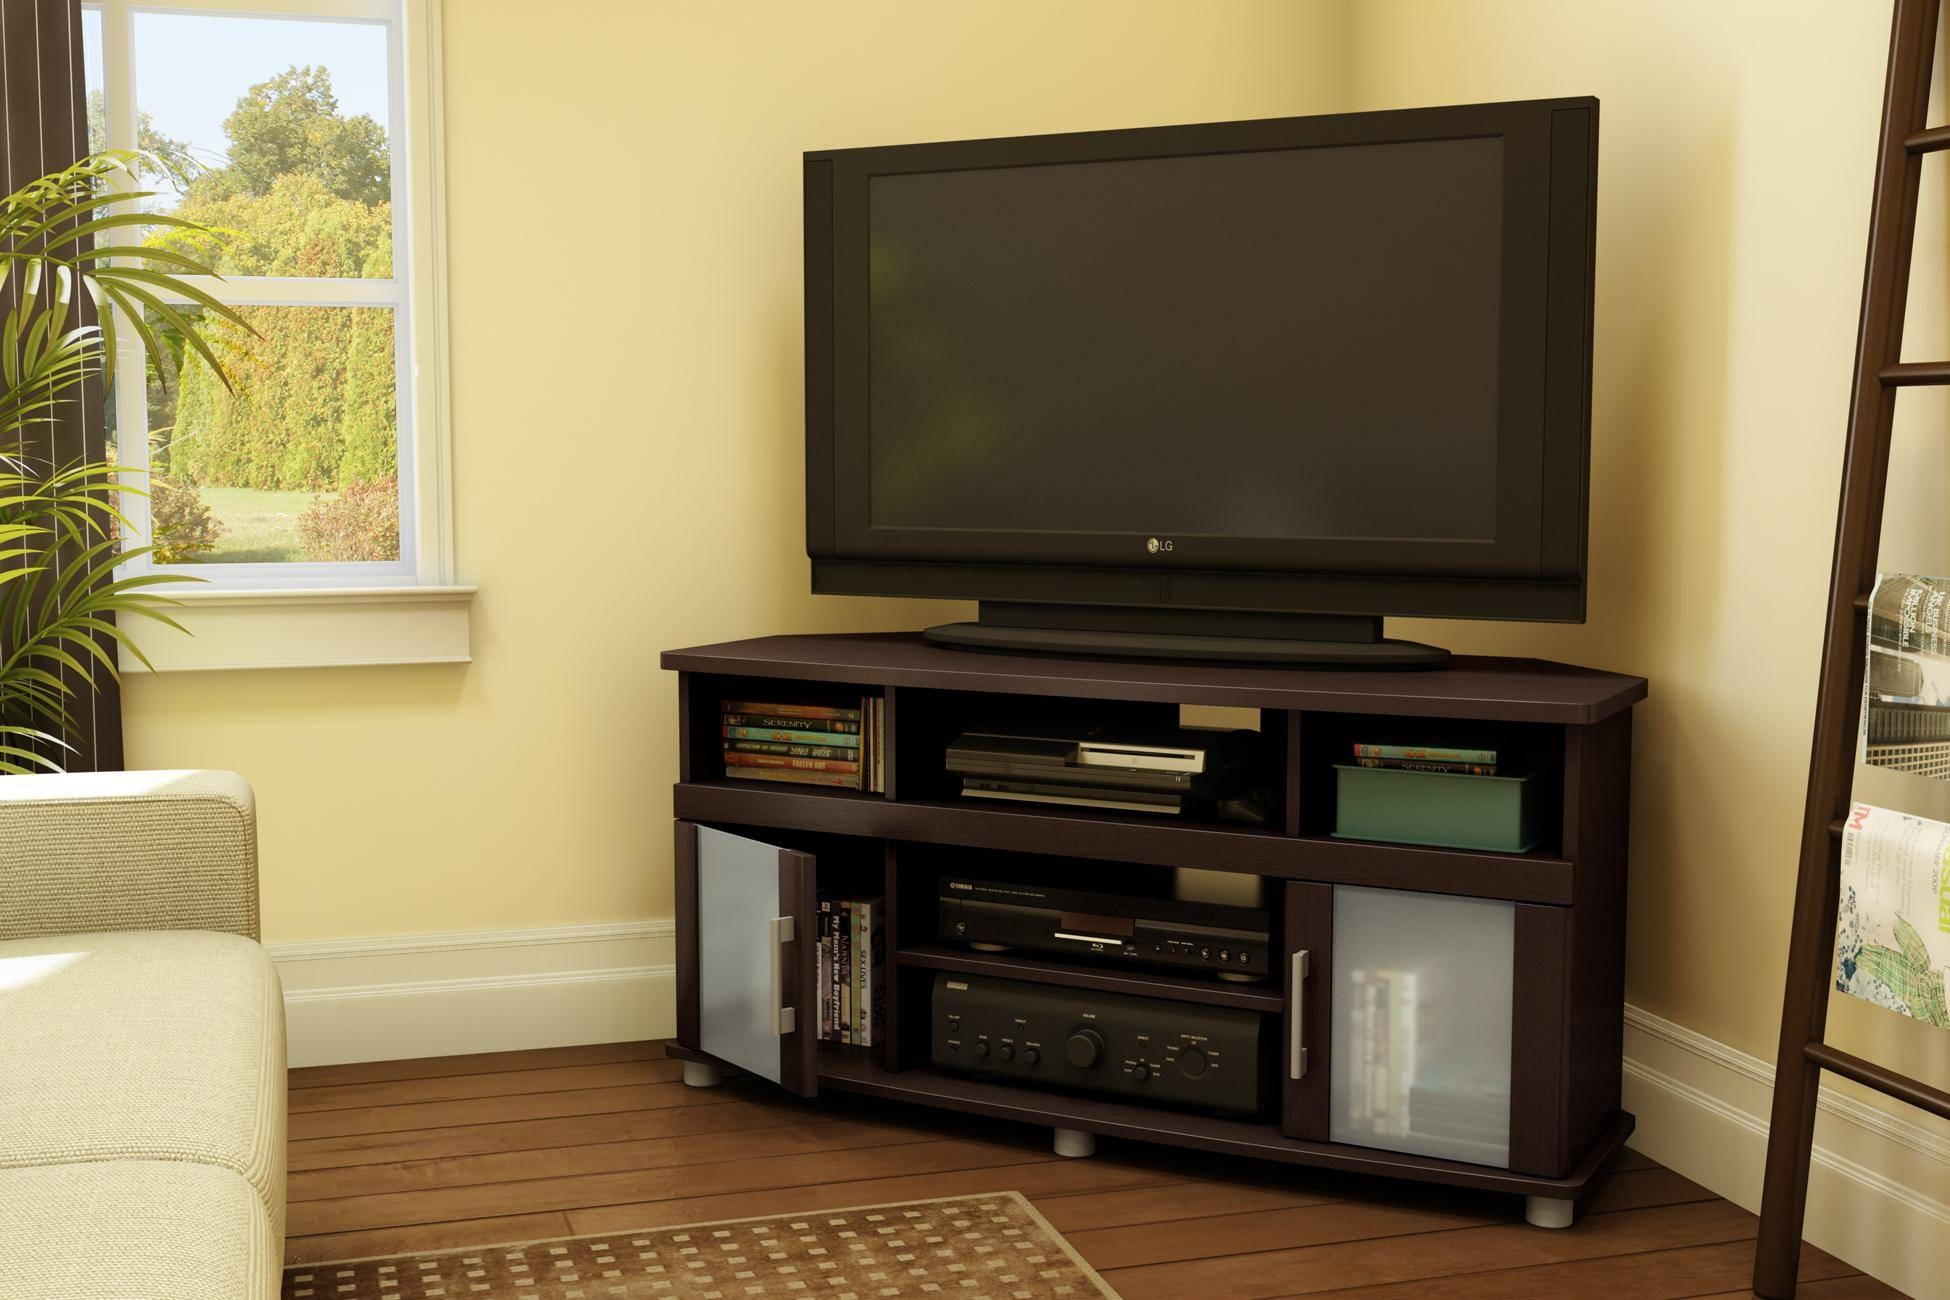 Furniture. The Best Collection Of Big Screen Tv Stands For Home in Tv Stands For Large Tvs (Image 3 of 15)